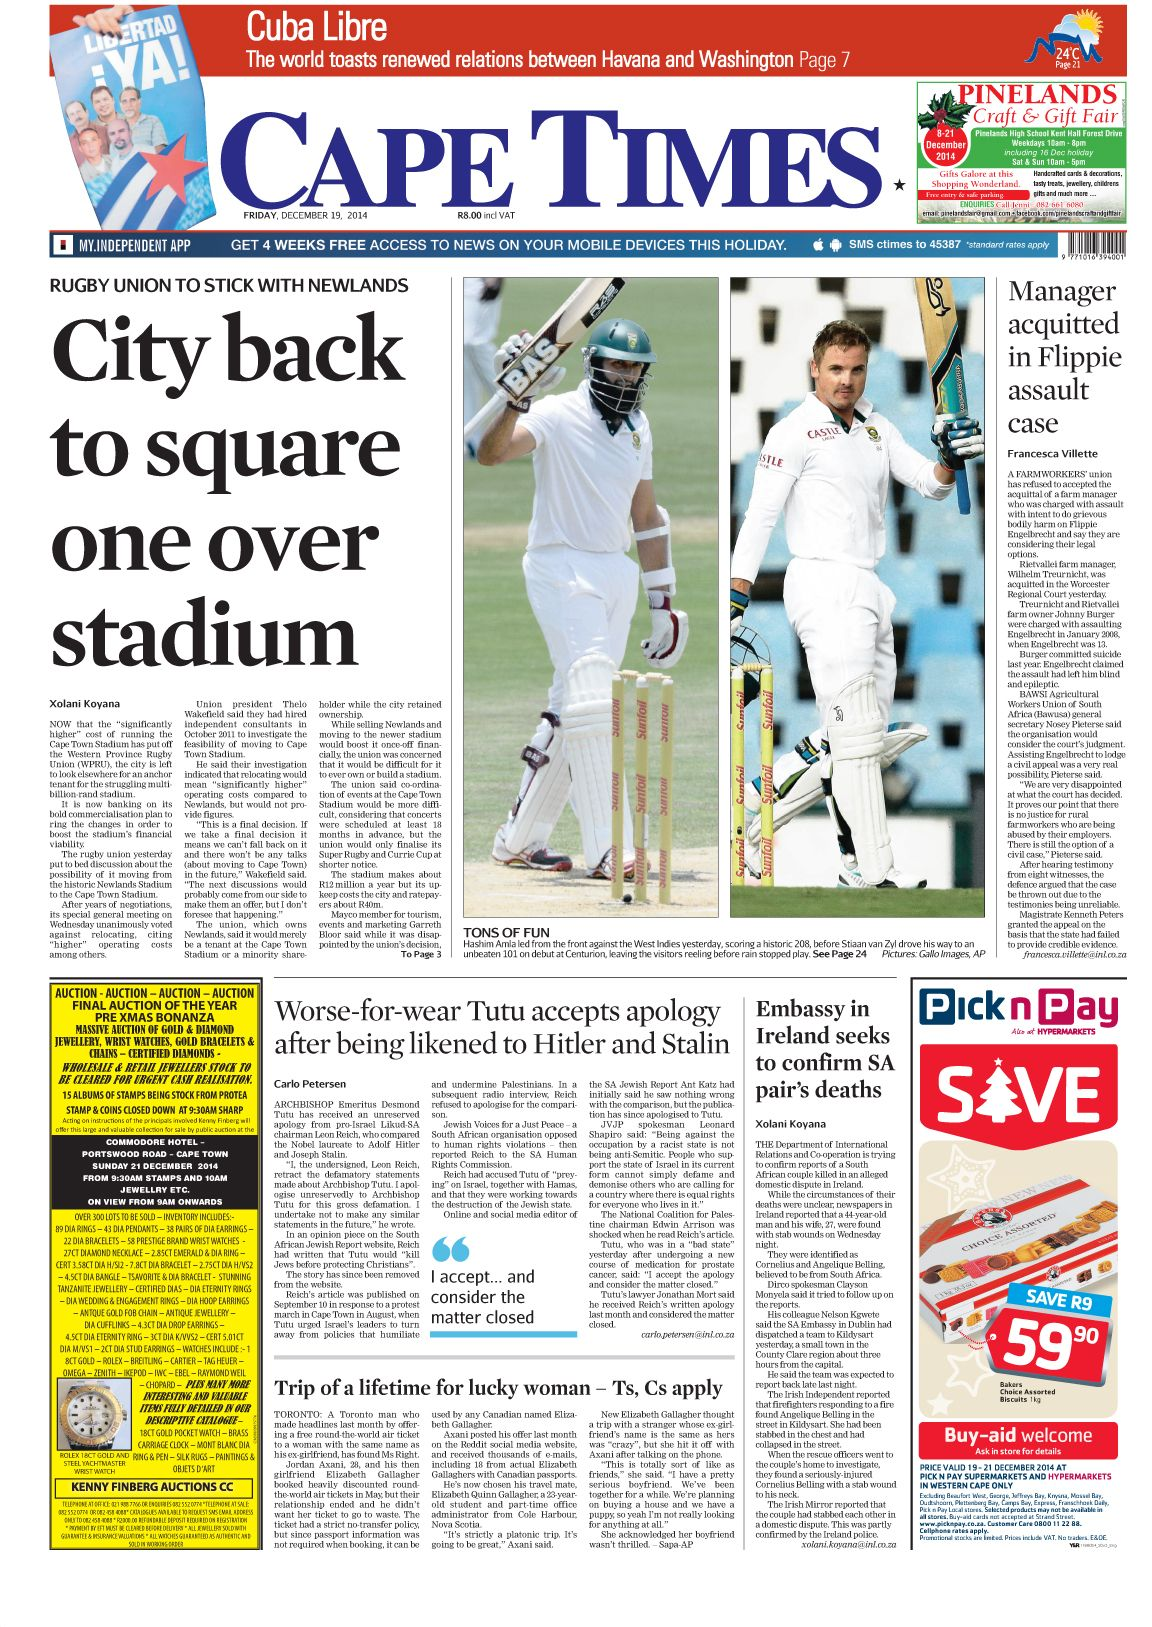 News making headlines: City back to square one over stadium